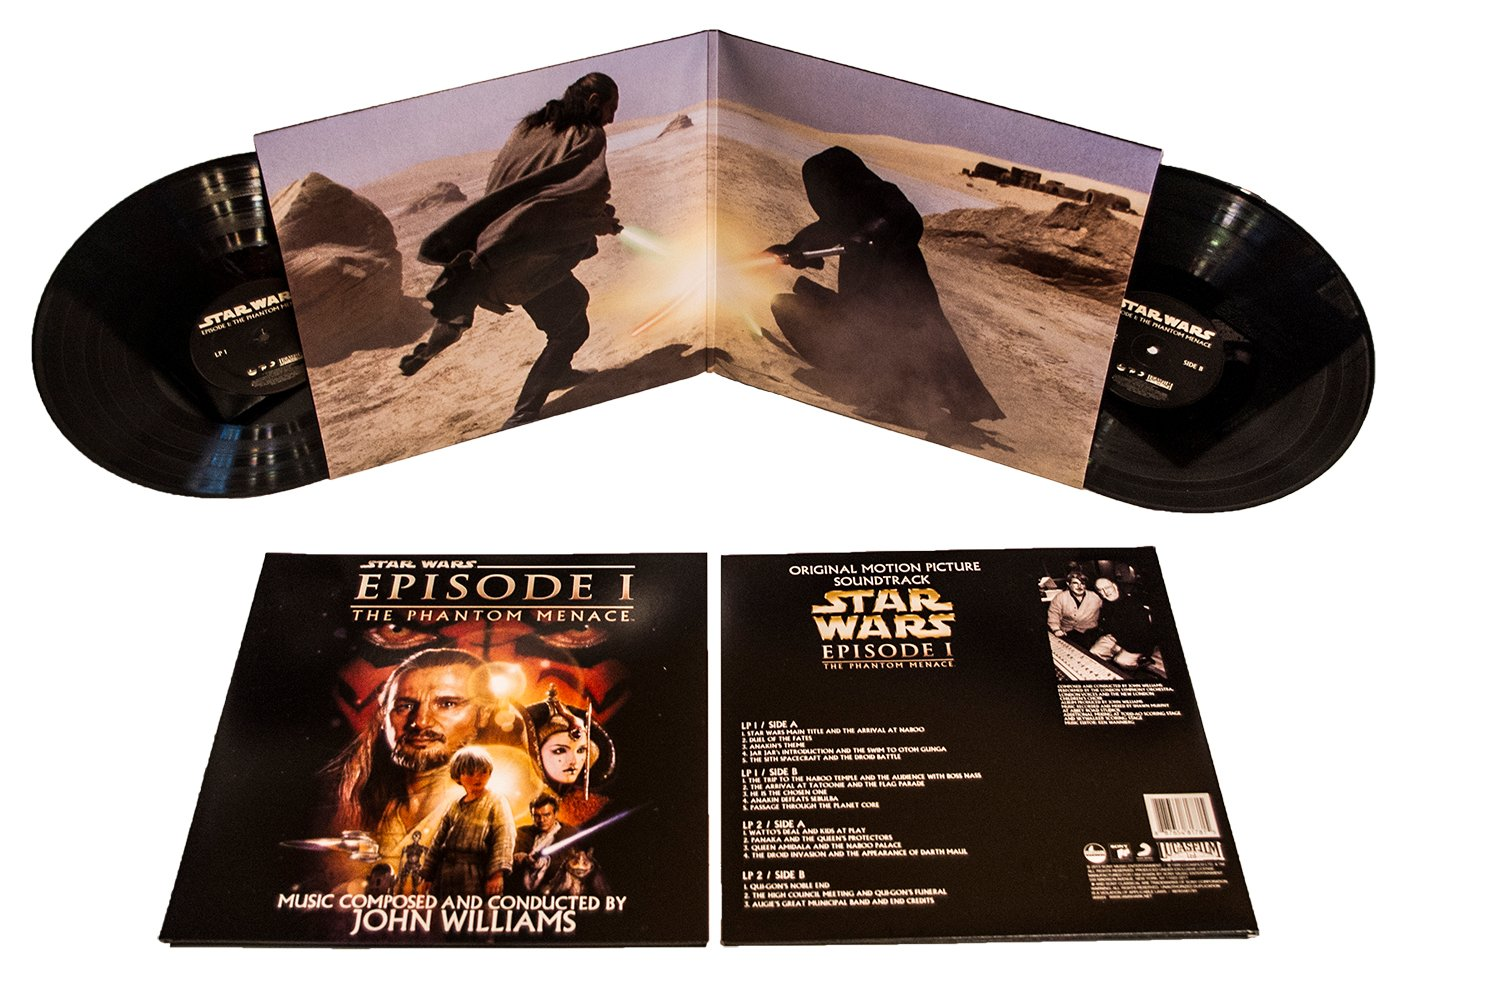 The Phantom Menace soundtrack - gatefold sleeve